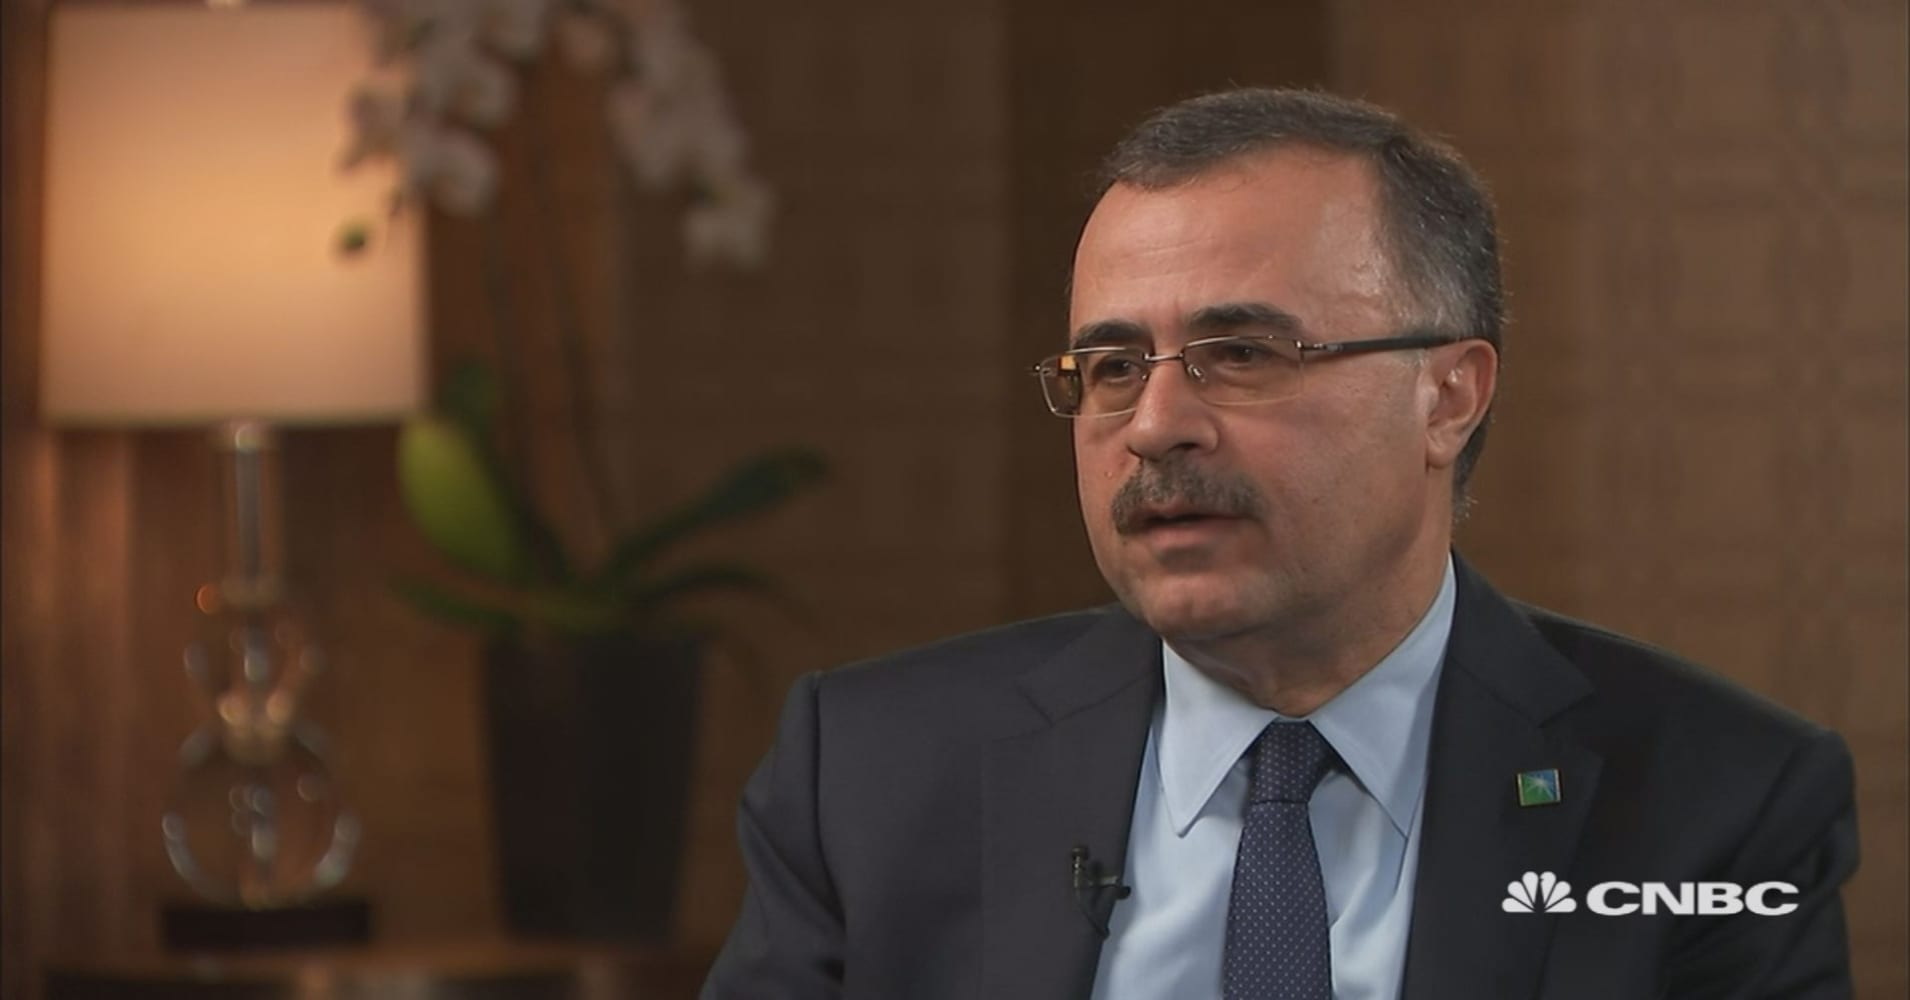 Watch CNBC's full exclusive interview with Saudi Aramco CEO Amin Nasser